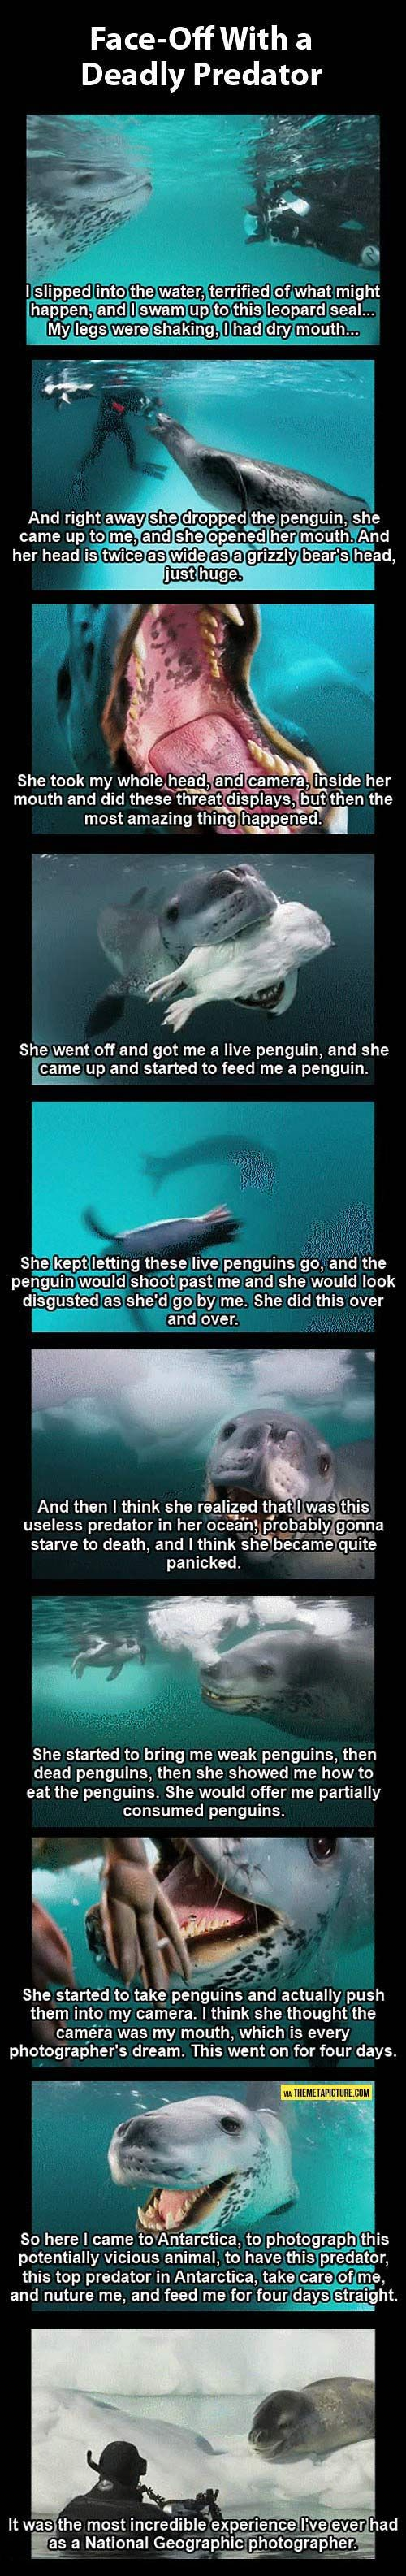 That poor seal was afraid his new friend was too stupid to live! Sweet :)